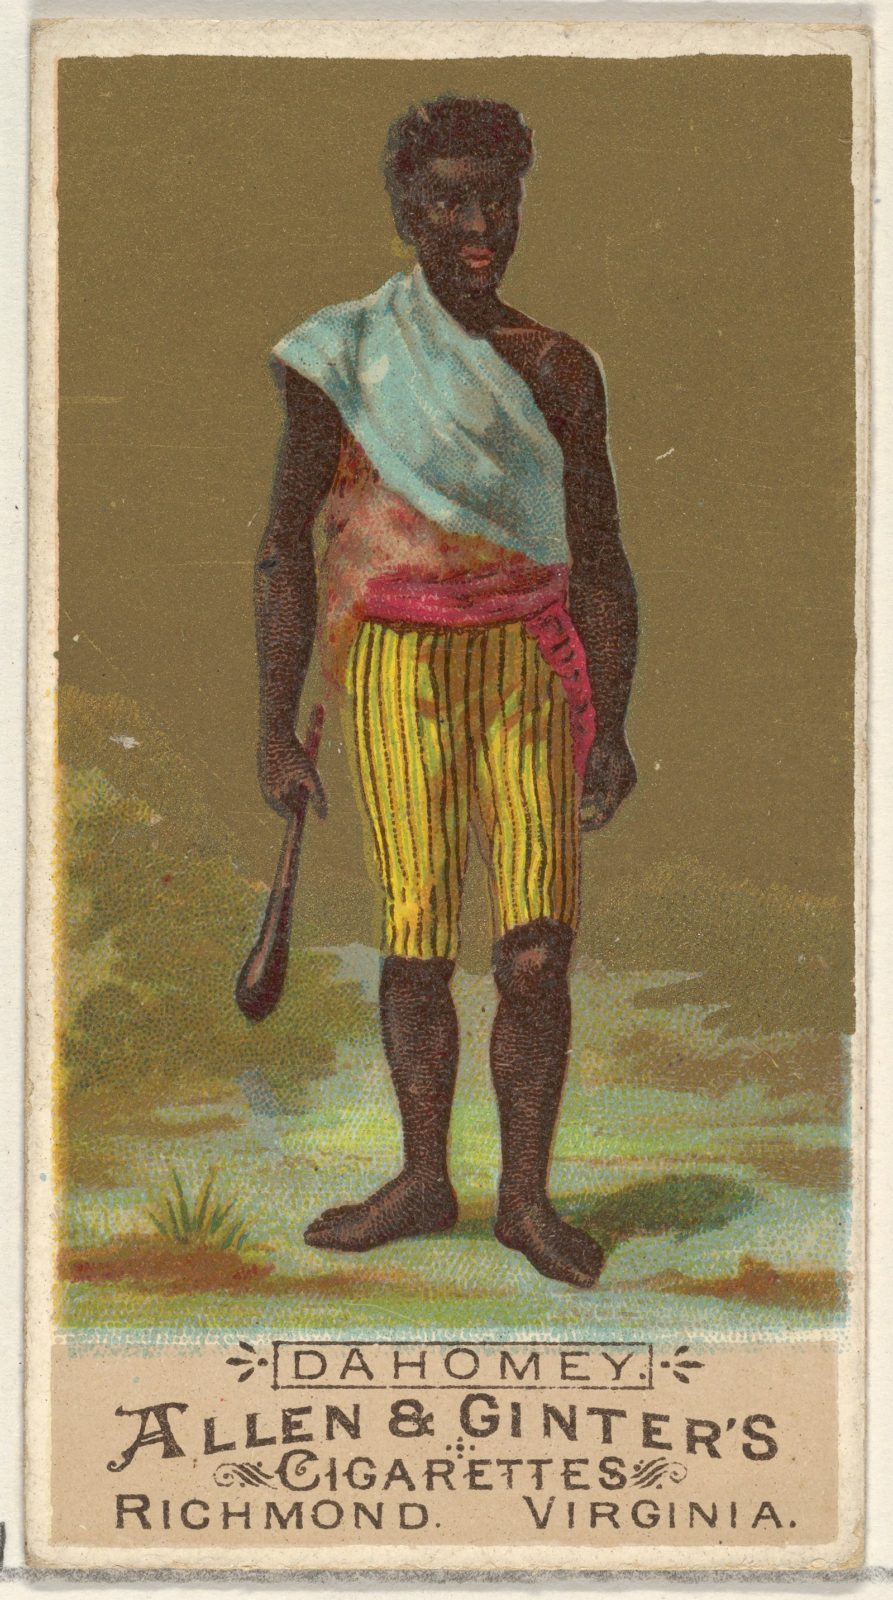 Dahomey, from the Natives in Costume series (N16) for Allen & Ginter Cigarettes Brands